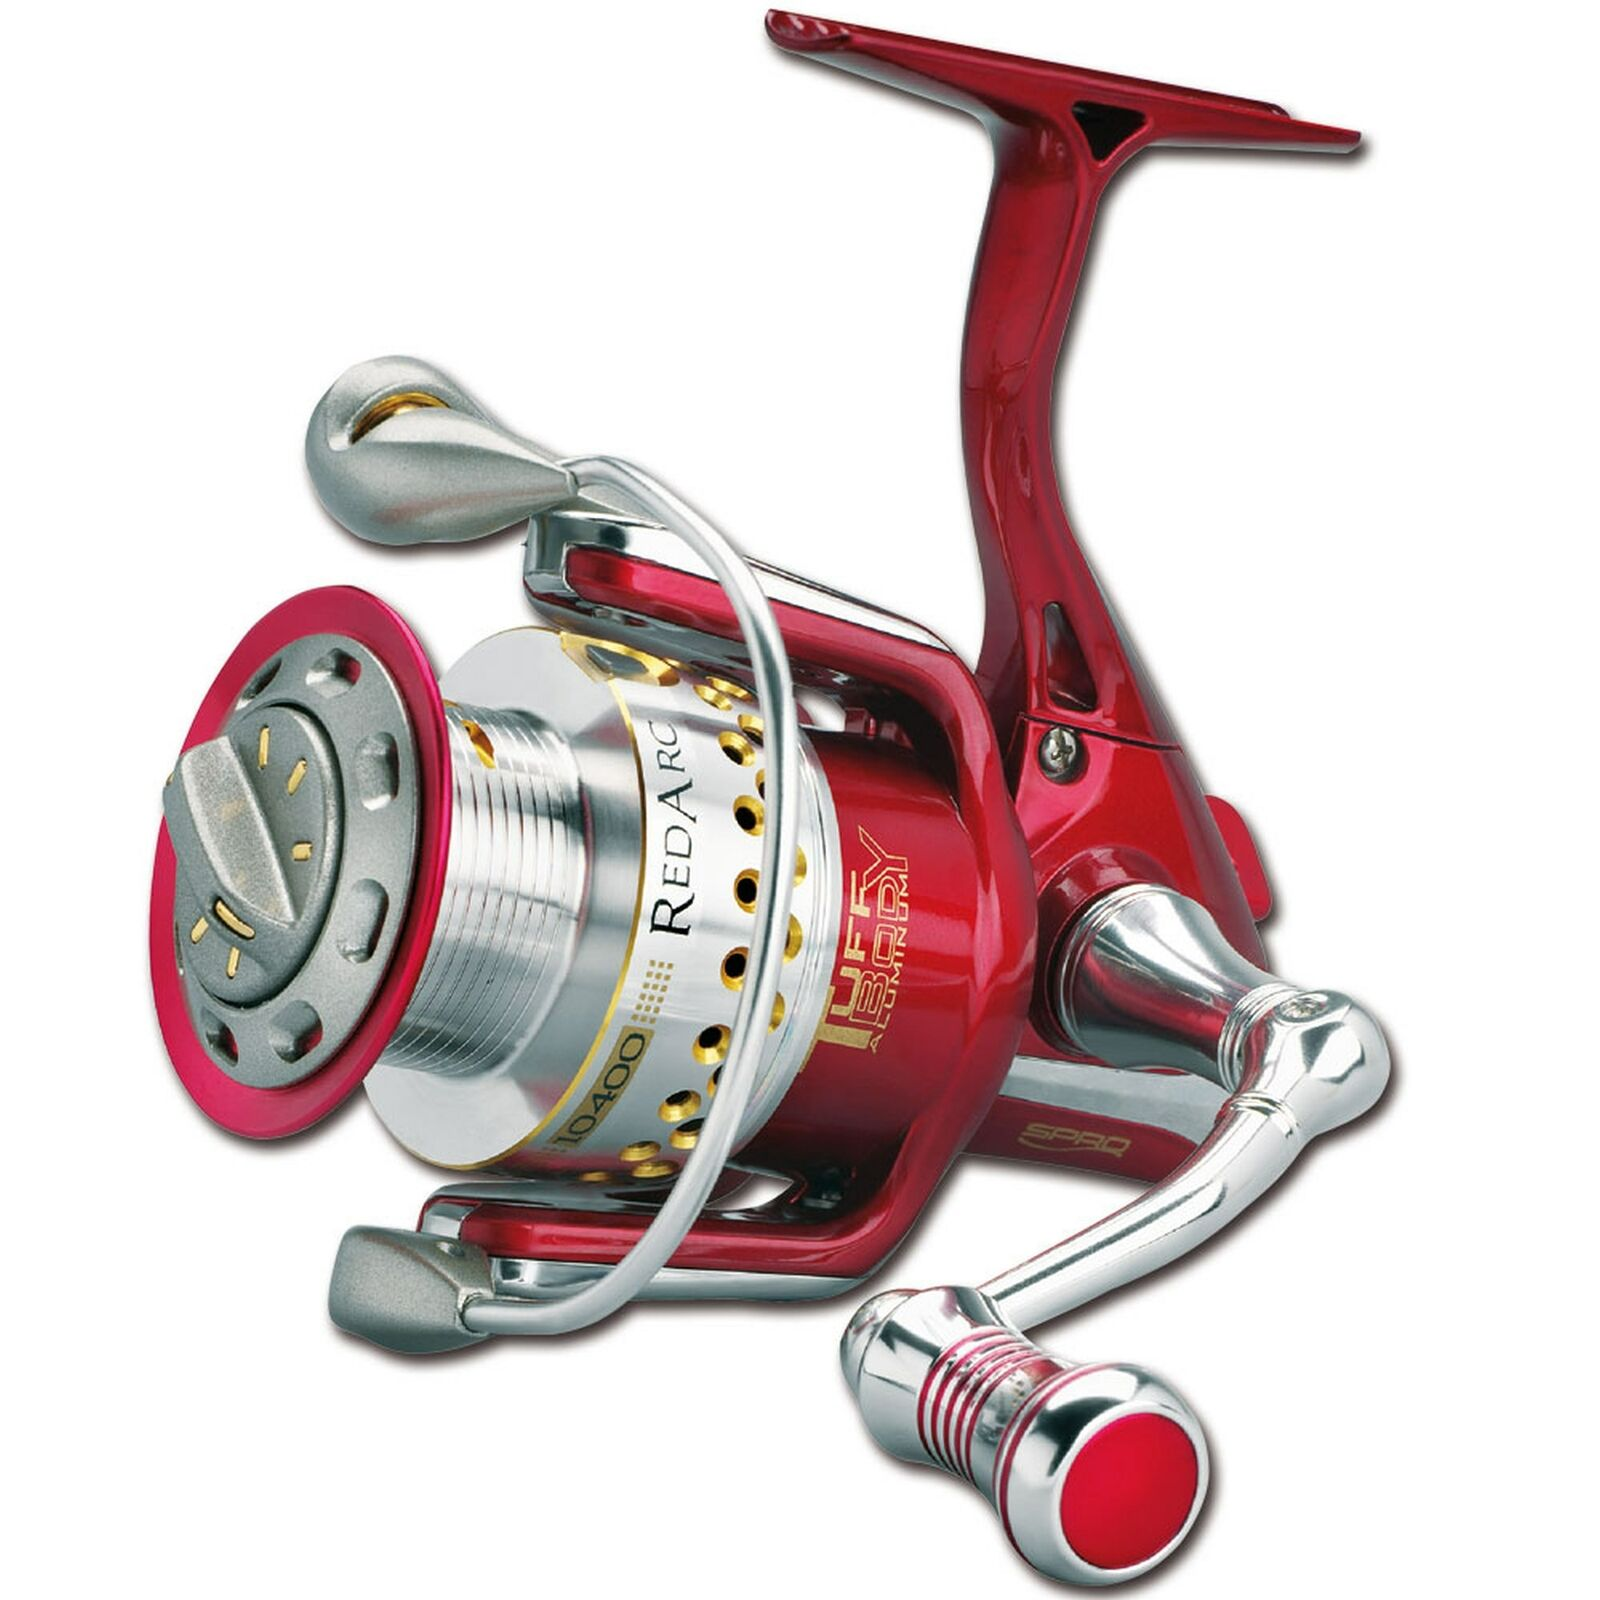 SPRO rouge Arc 10100 WS-Stationary-spinnrolle FRONT BRAKE-E-Coil